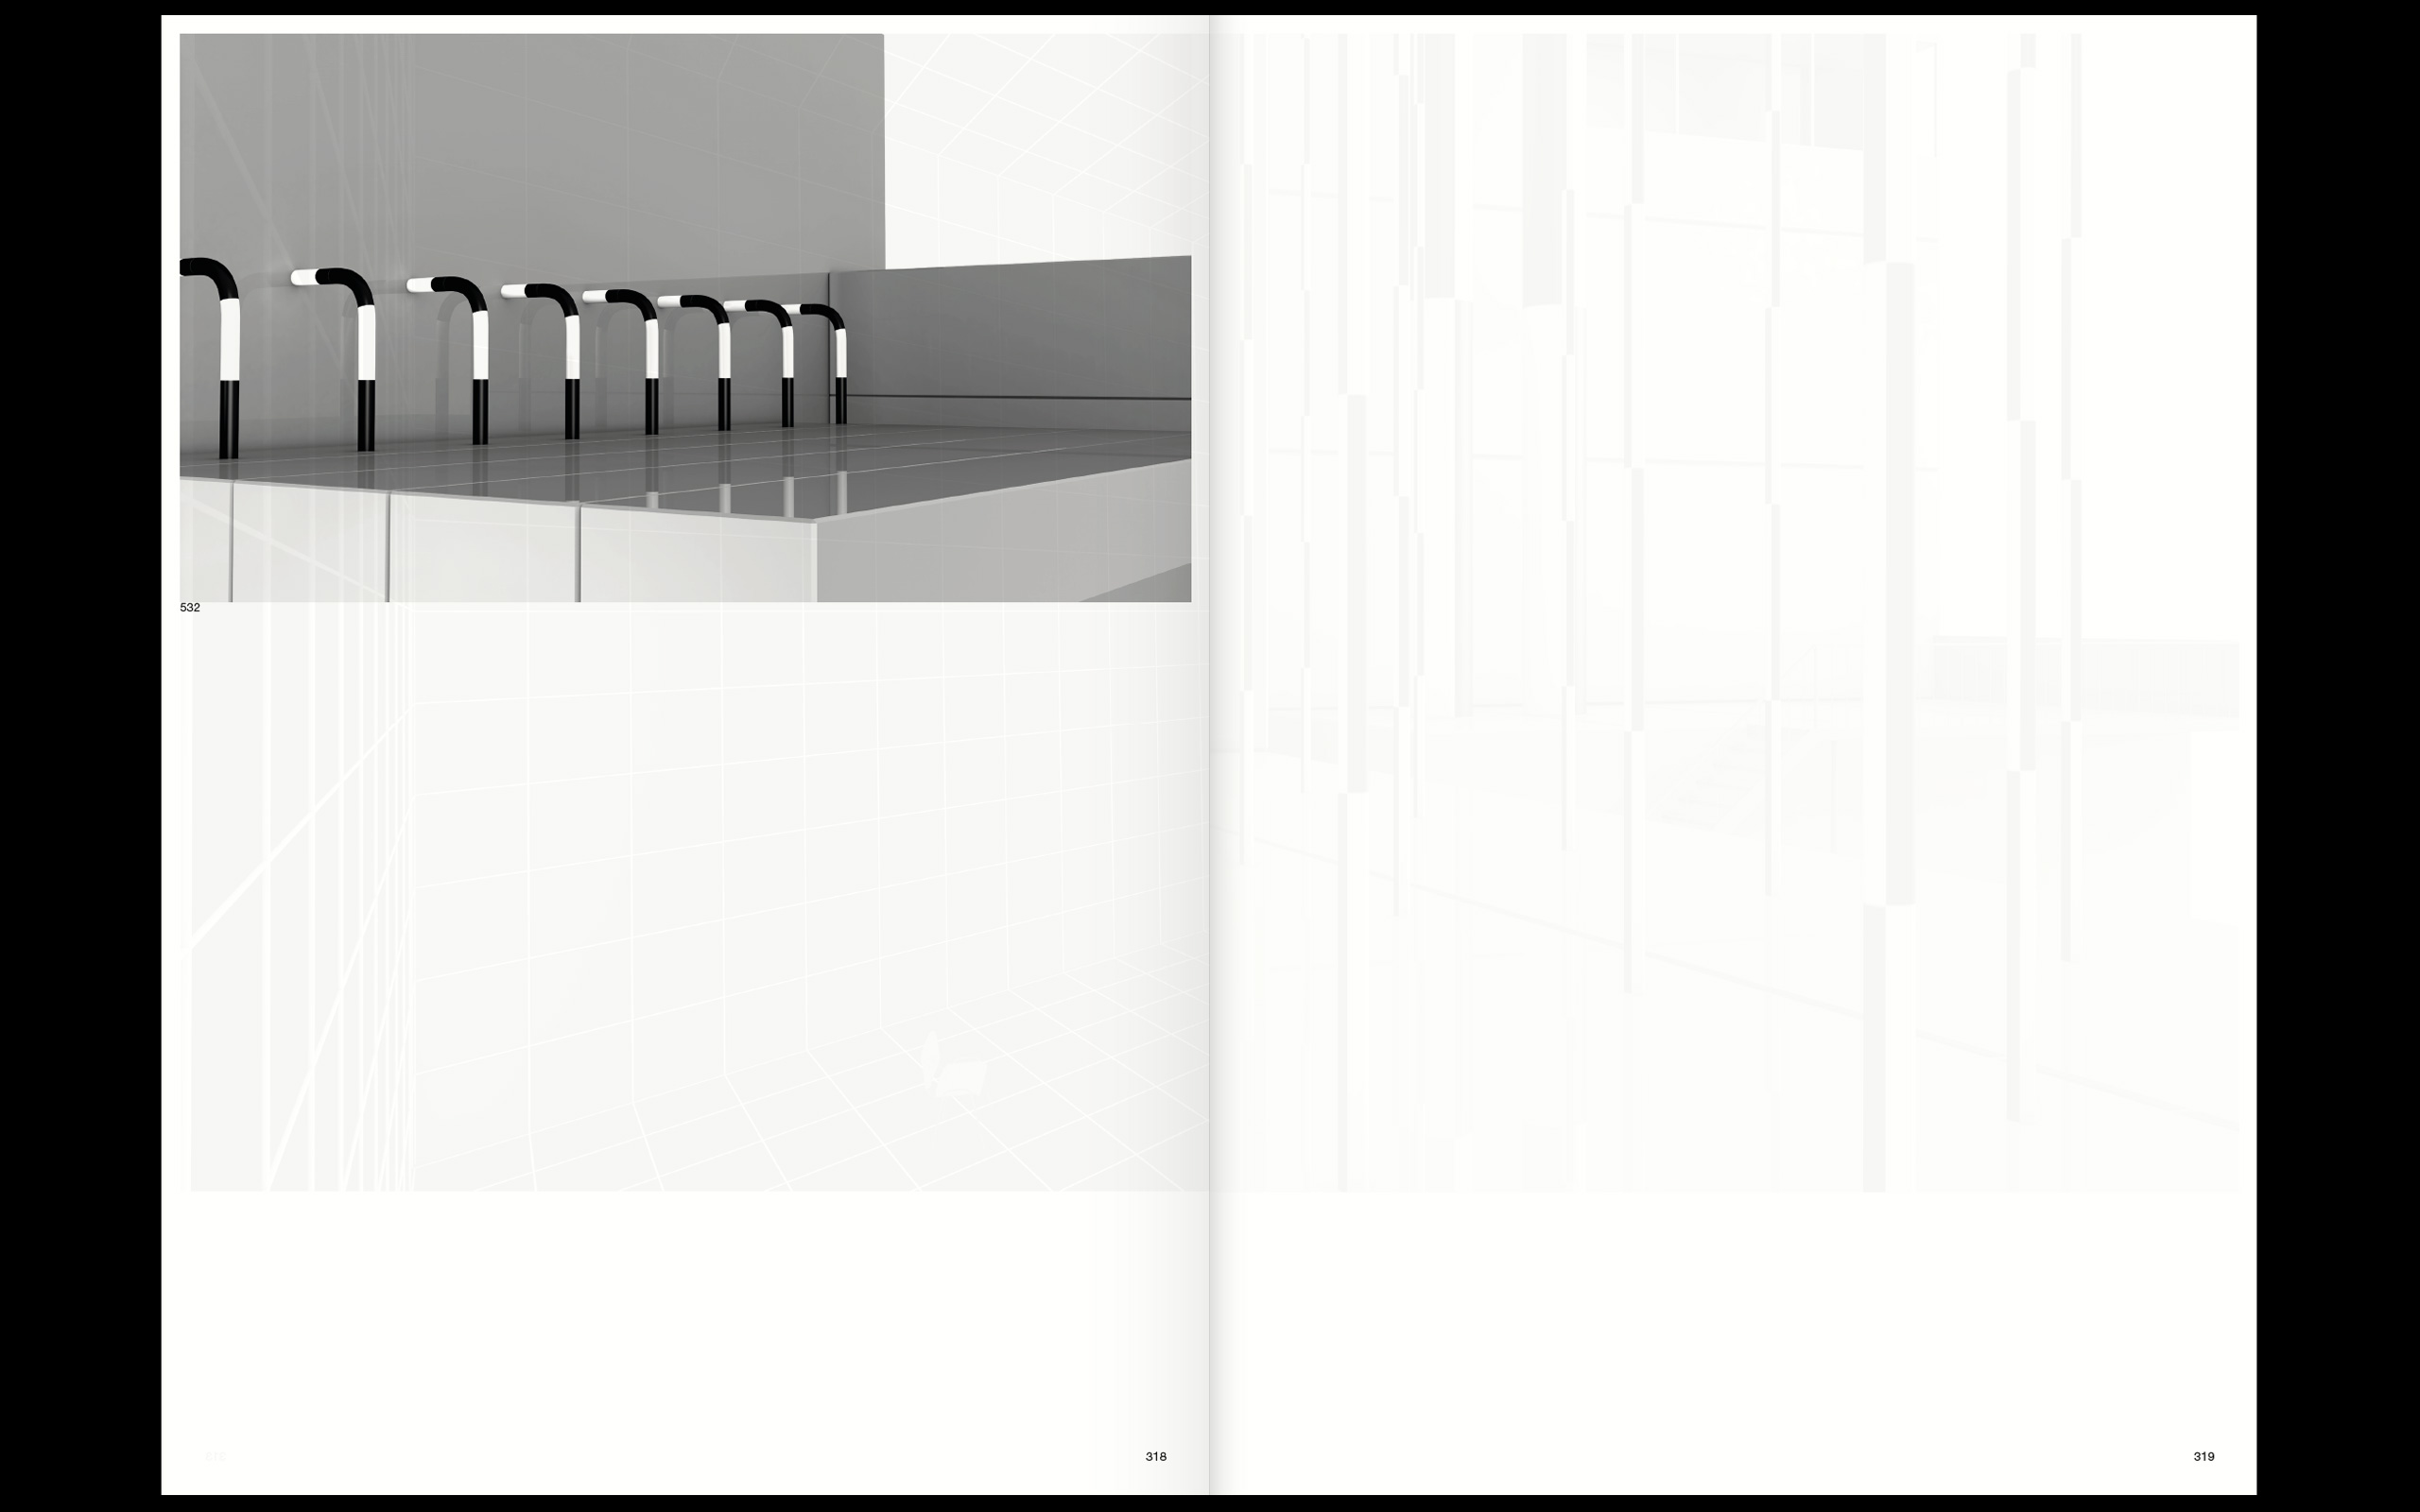 #laurajouan Isabel Ogden project, publication, Architecture Department at the Royal College of Art 2017